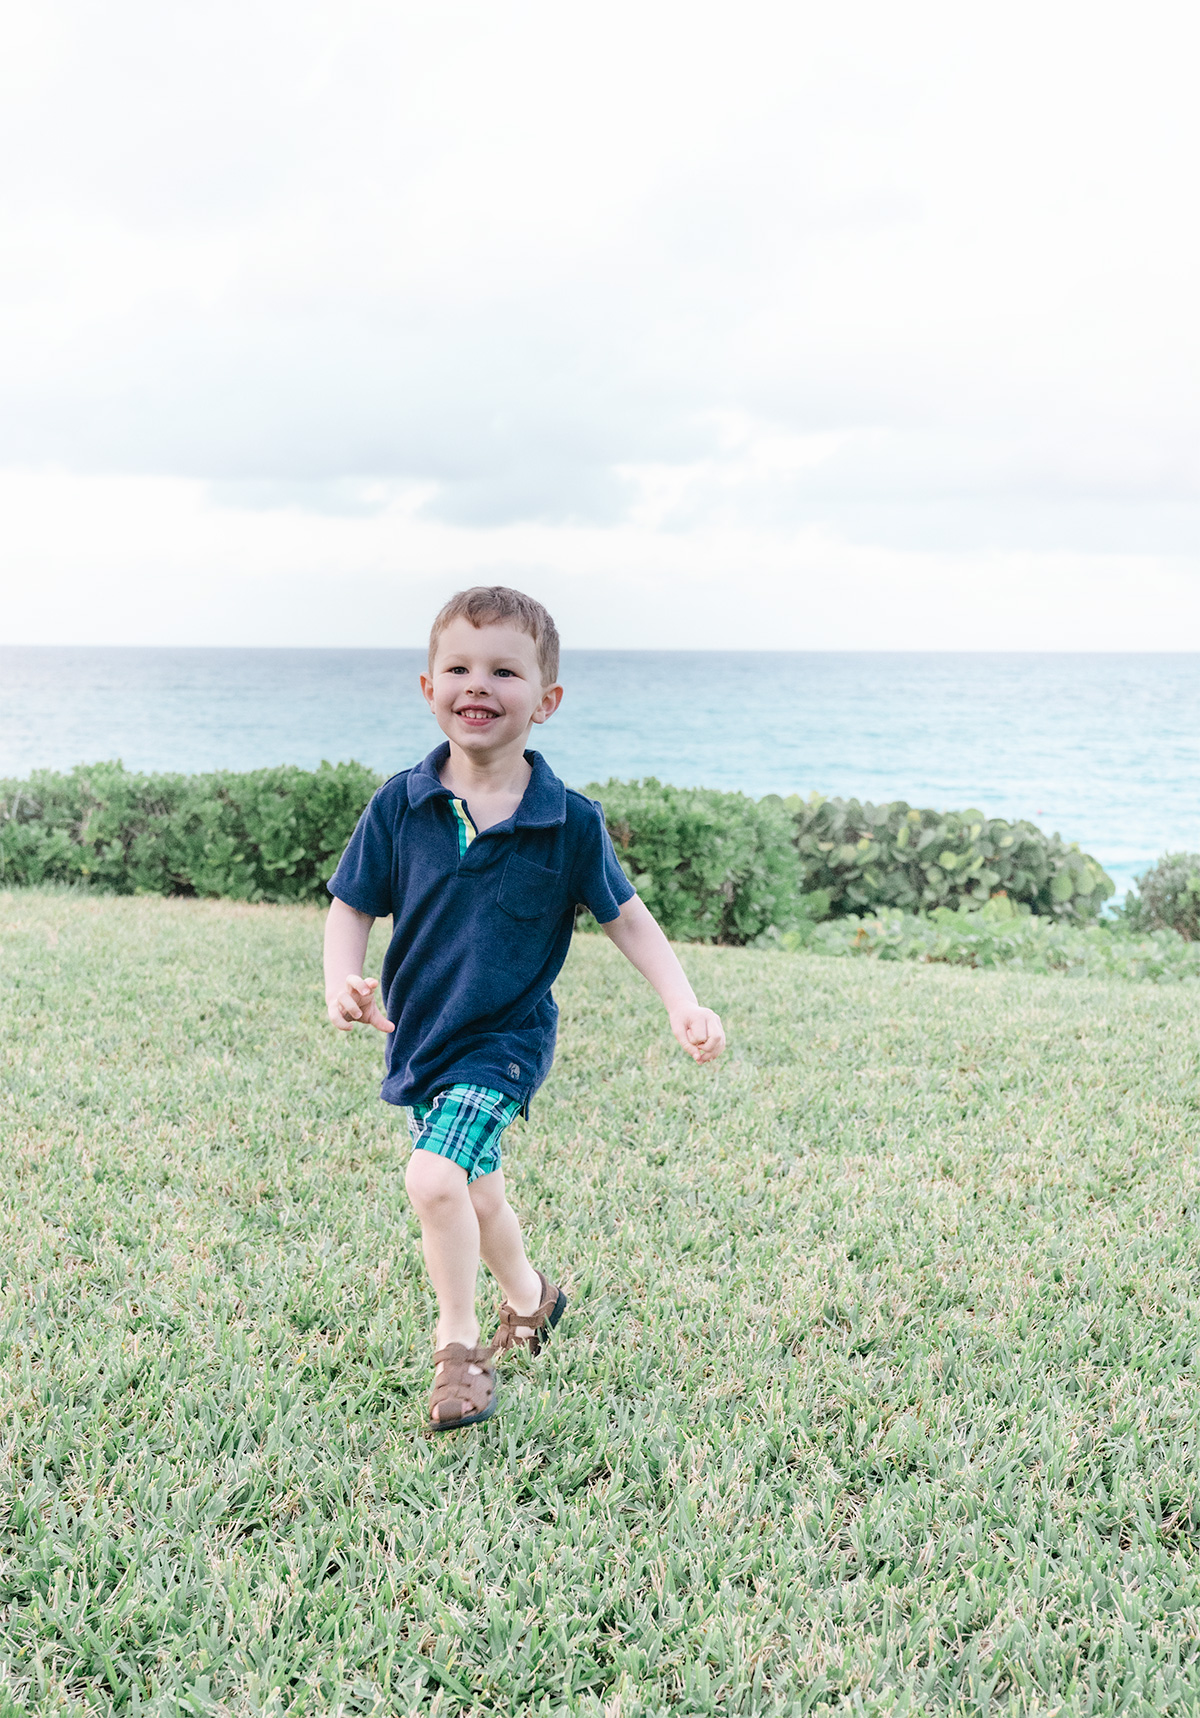 The-Simple-Exercise-Trick-I-Learned-From-My-Preschooler